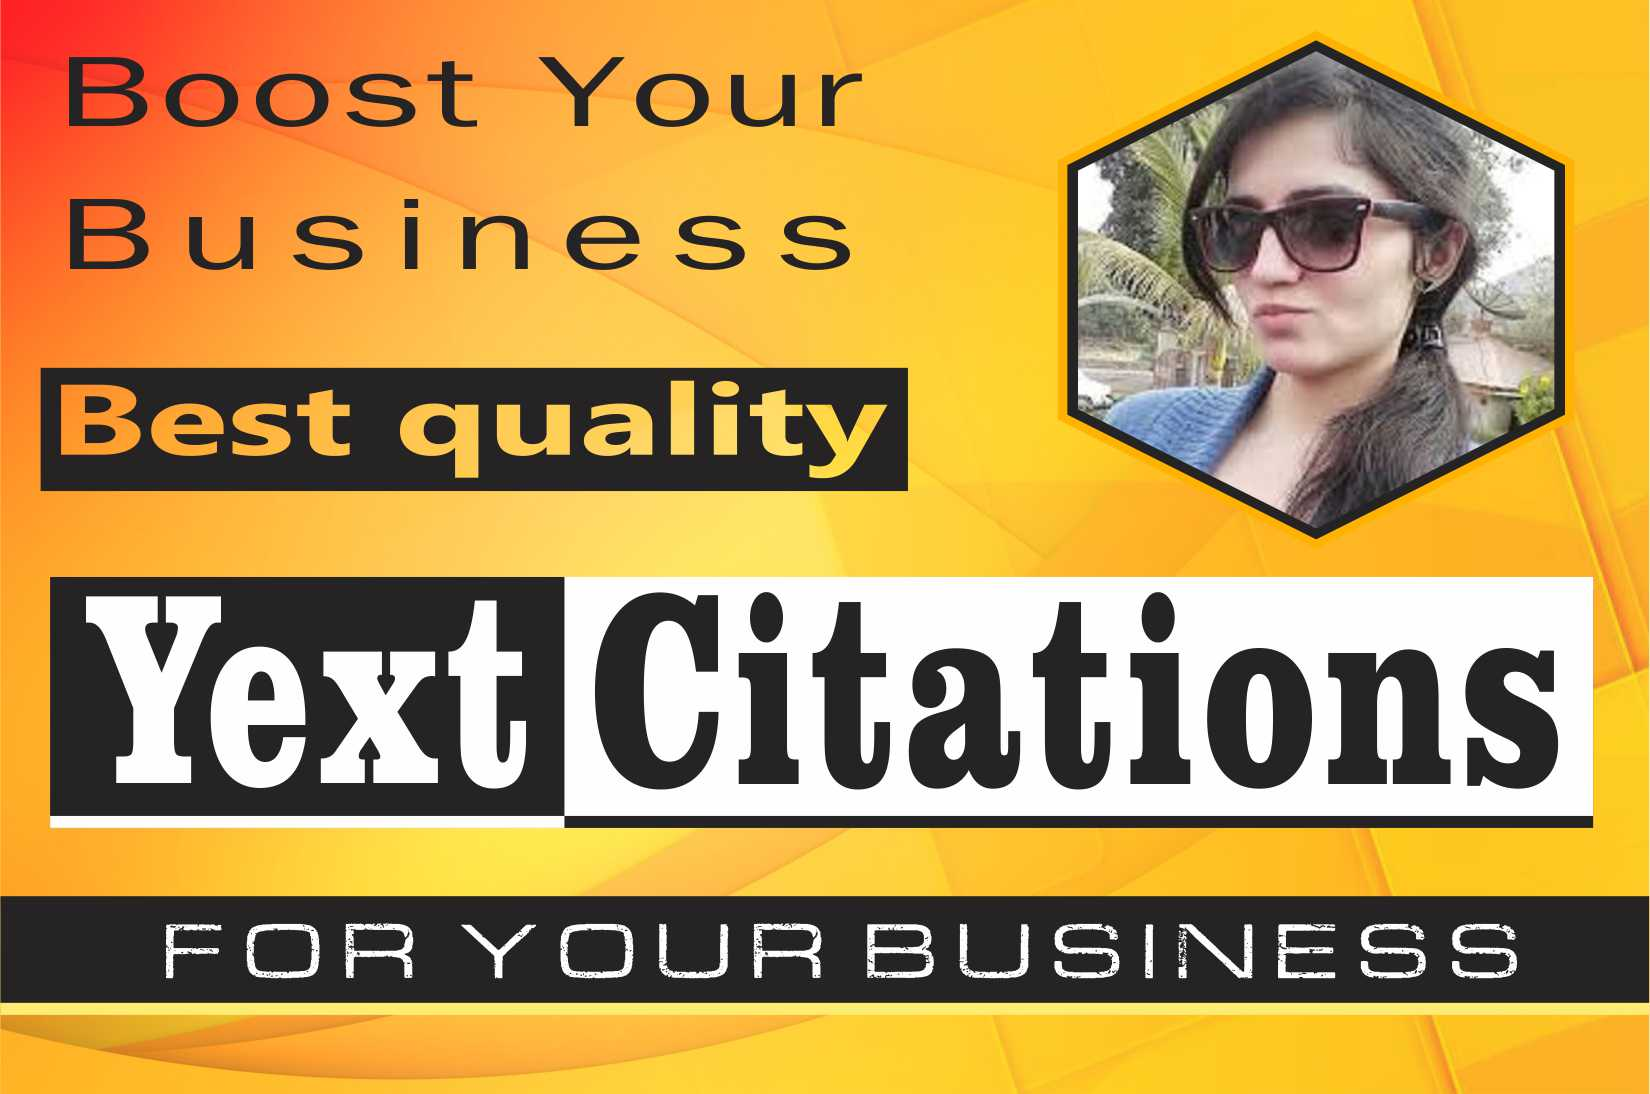 Do 50 Local Citations From Yext And Brightlocal For Google 3 Pack Ranking